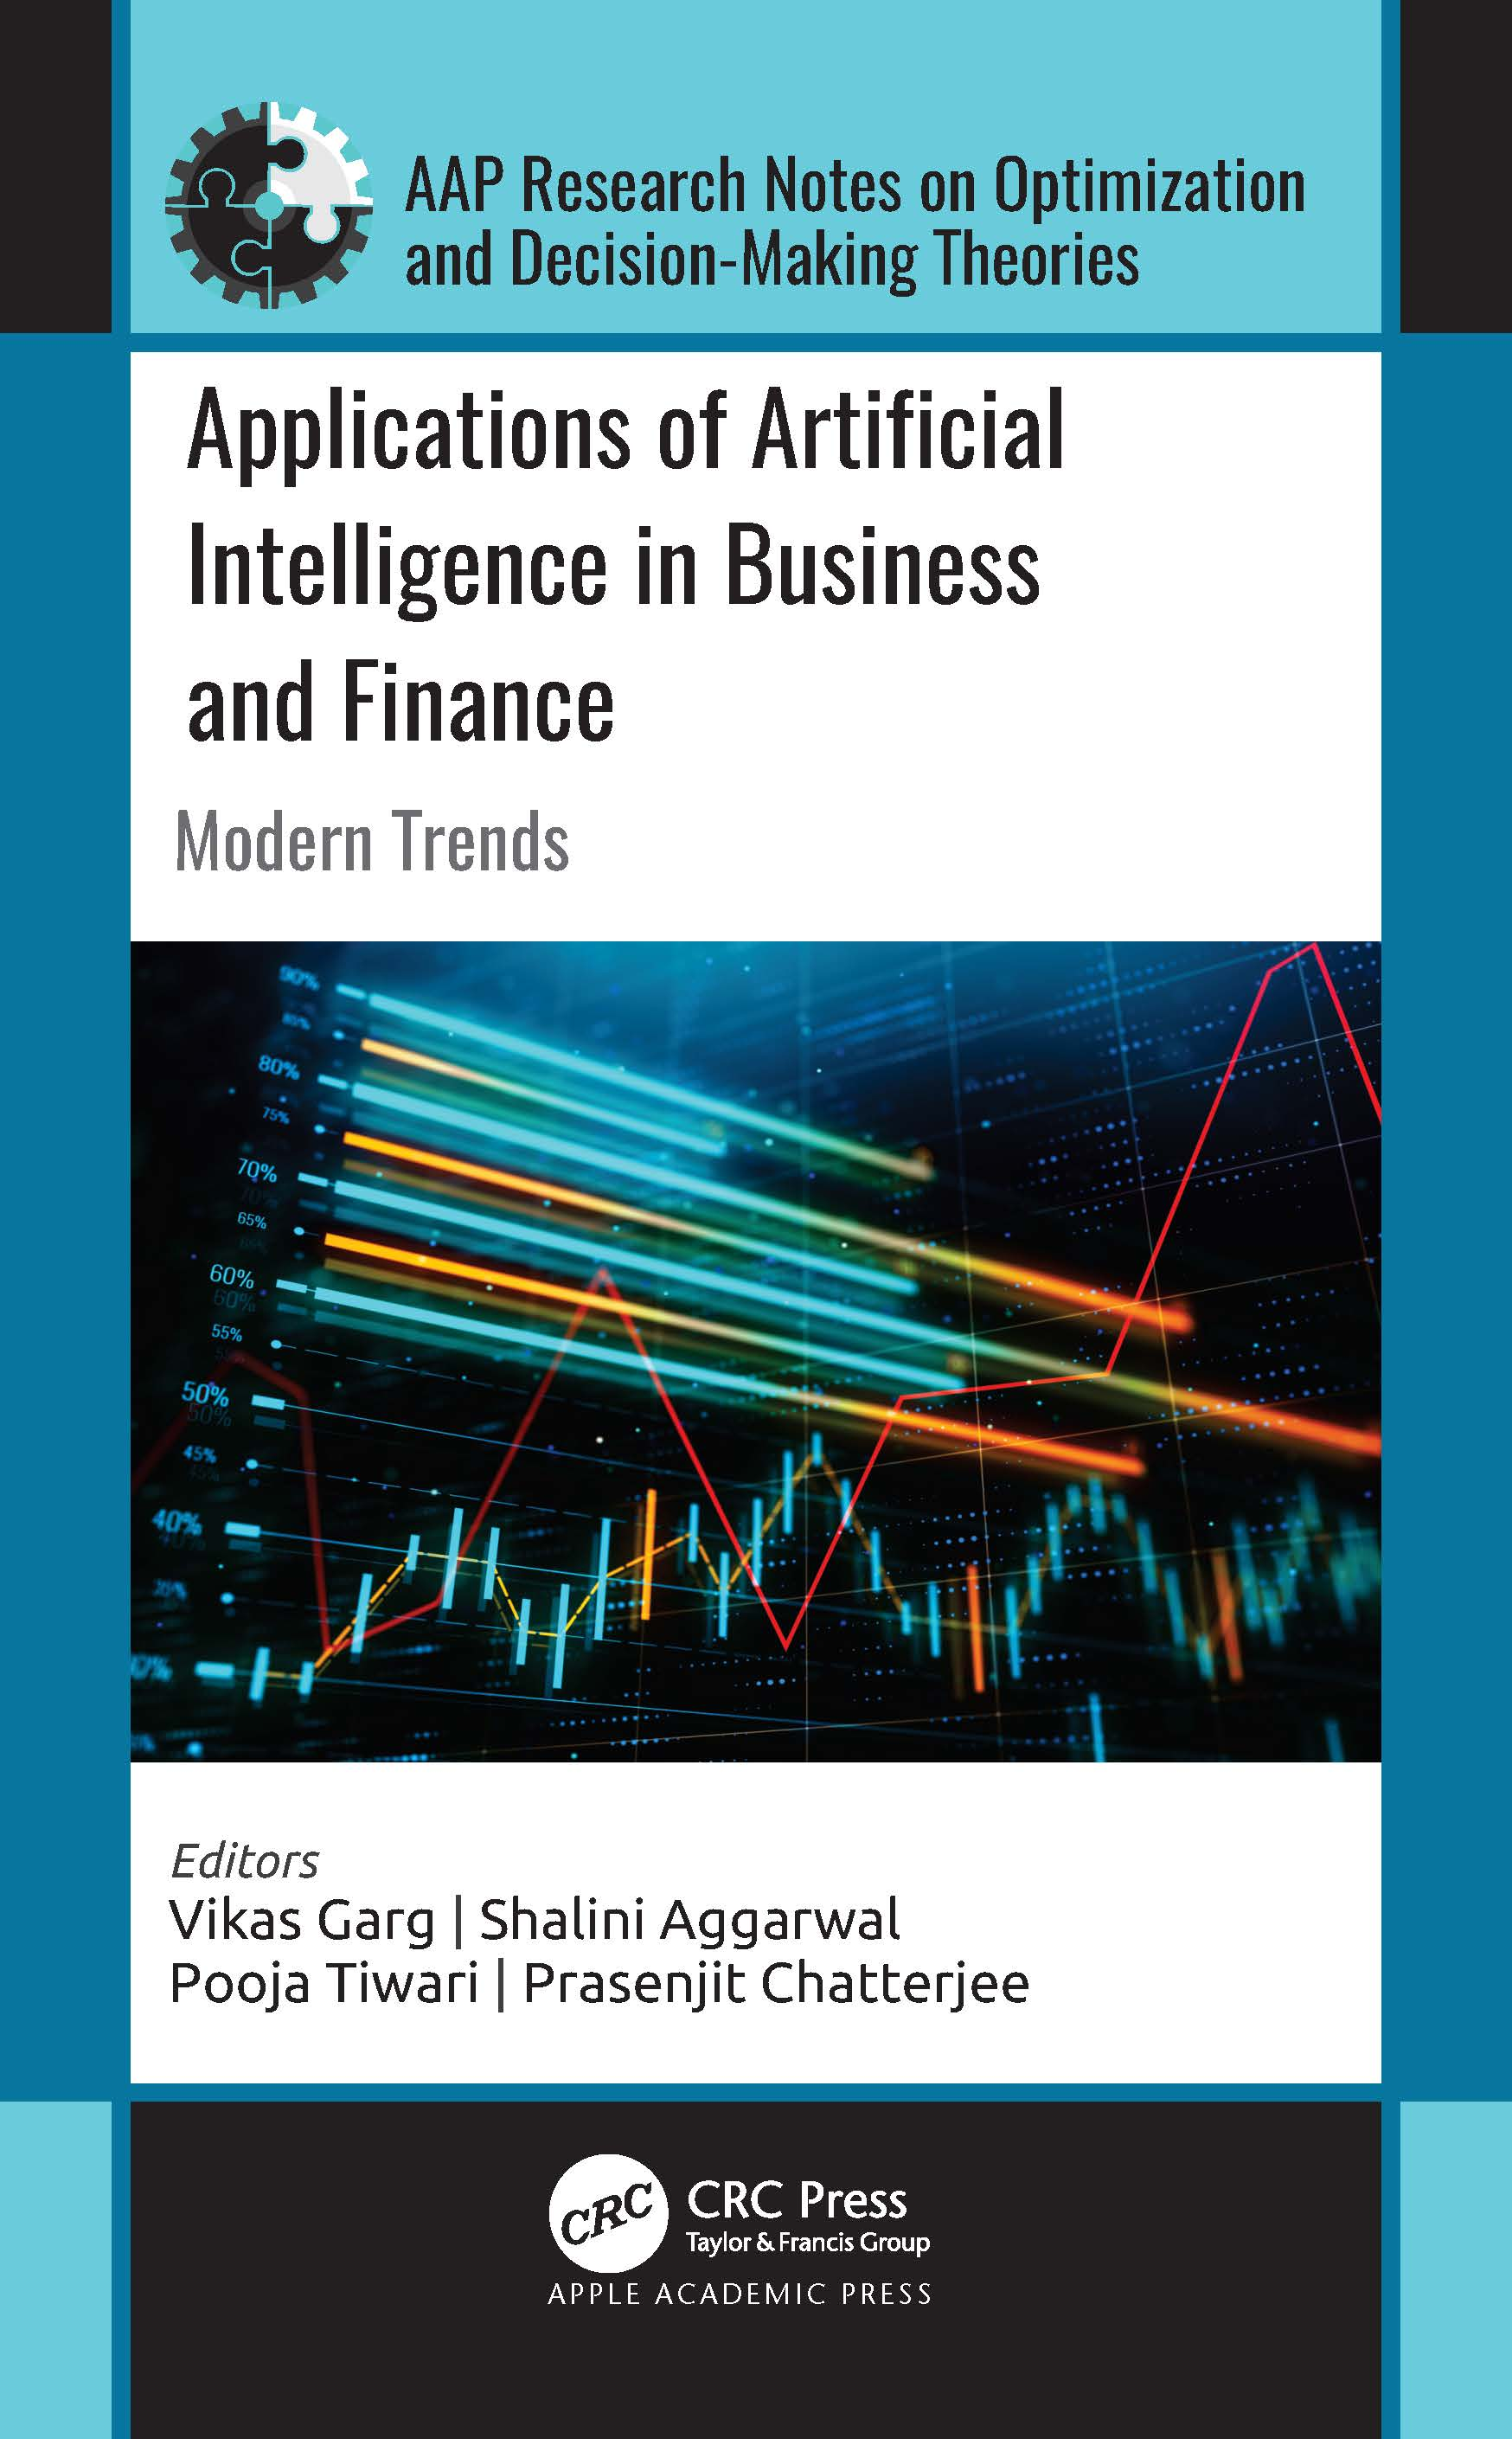 Applications of Artificial Intelligence in Business and Finance